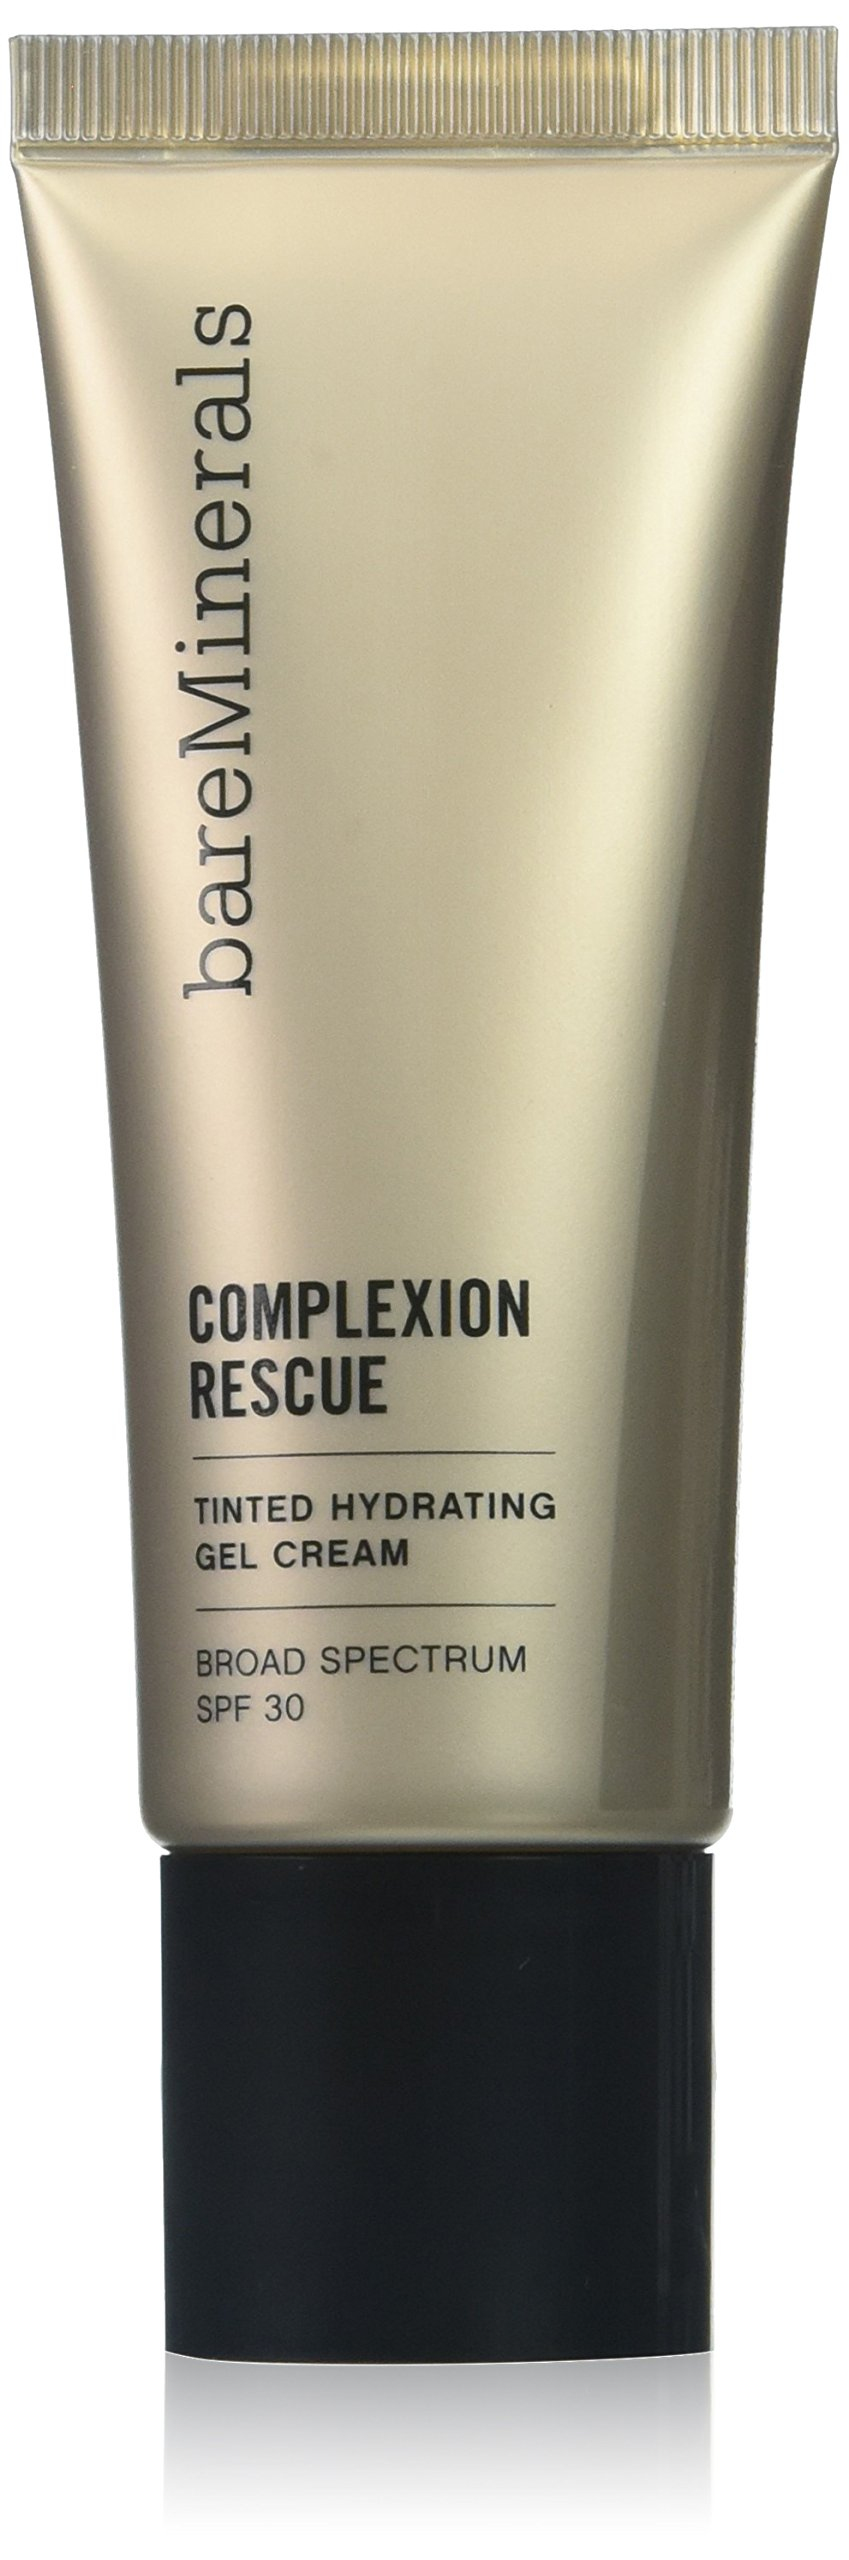 bareMinerals Complexion Rescue Tinted Hydrating Gel Cream SPF 30, Bamboo 5.5, 1.18 Ounce